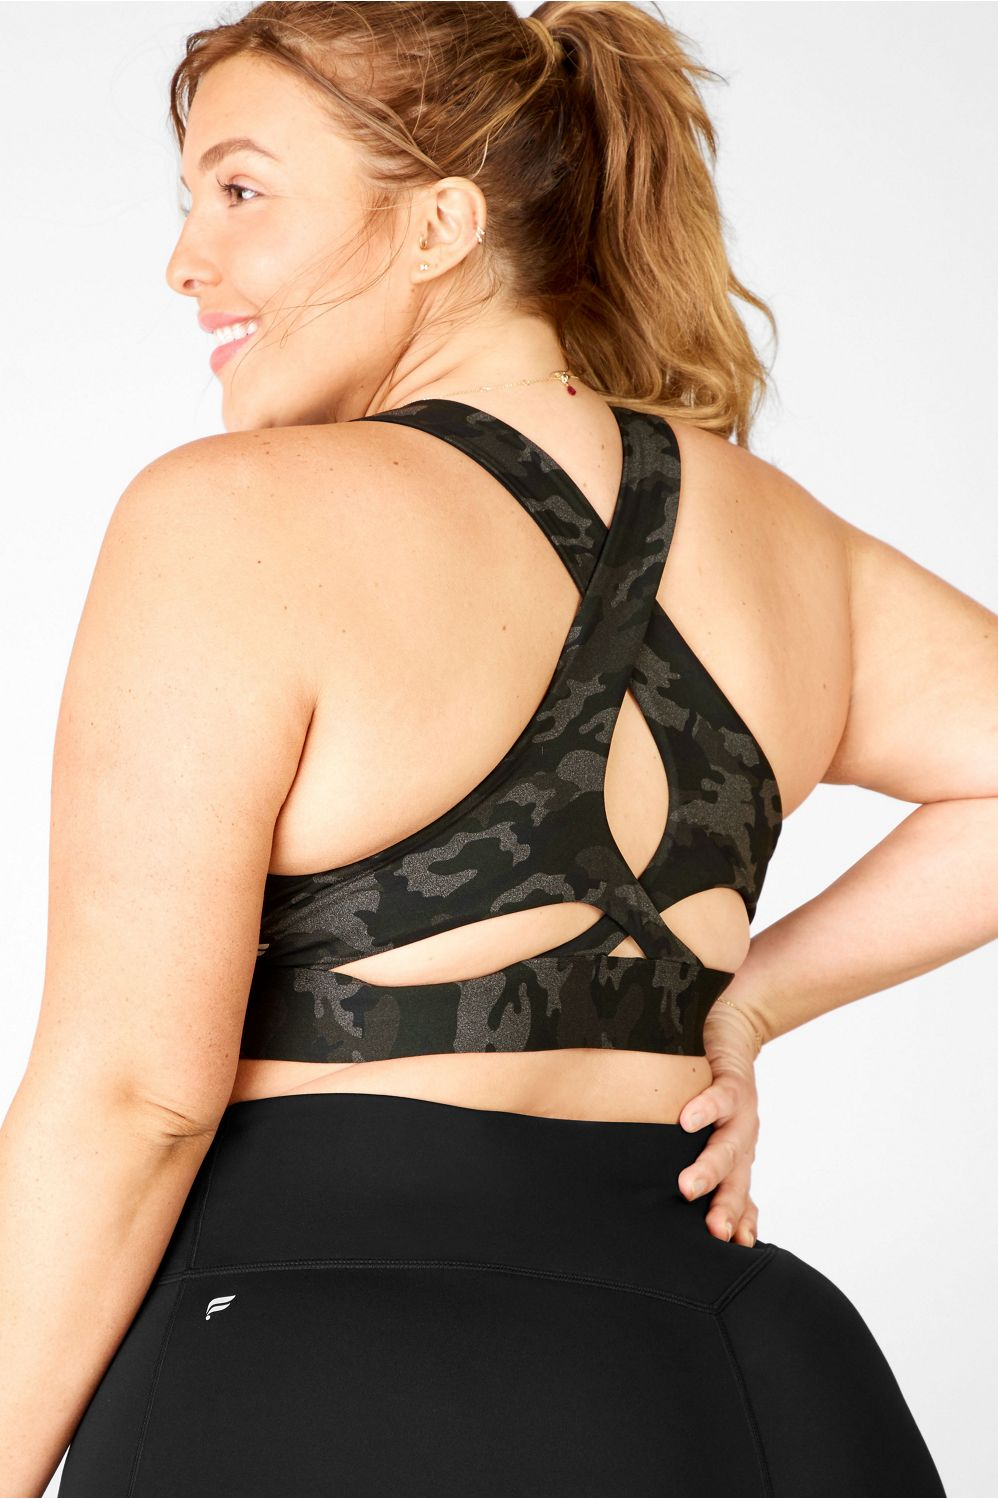 You liked the cutout cuteness of our Ellie Tank, so we made it into a supportive bra with extra wide straps for added support, sweat-wicking fabric and even some shimmer fabric that your ladies will surely love.